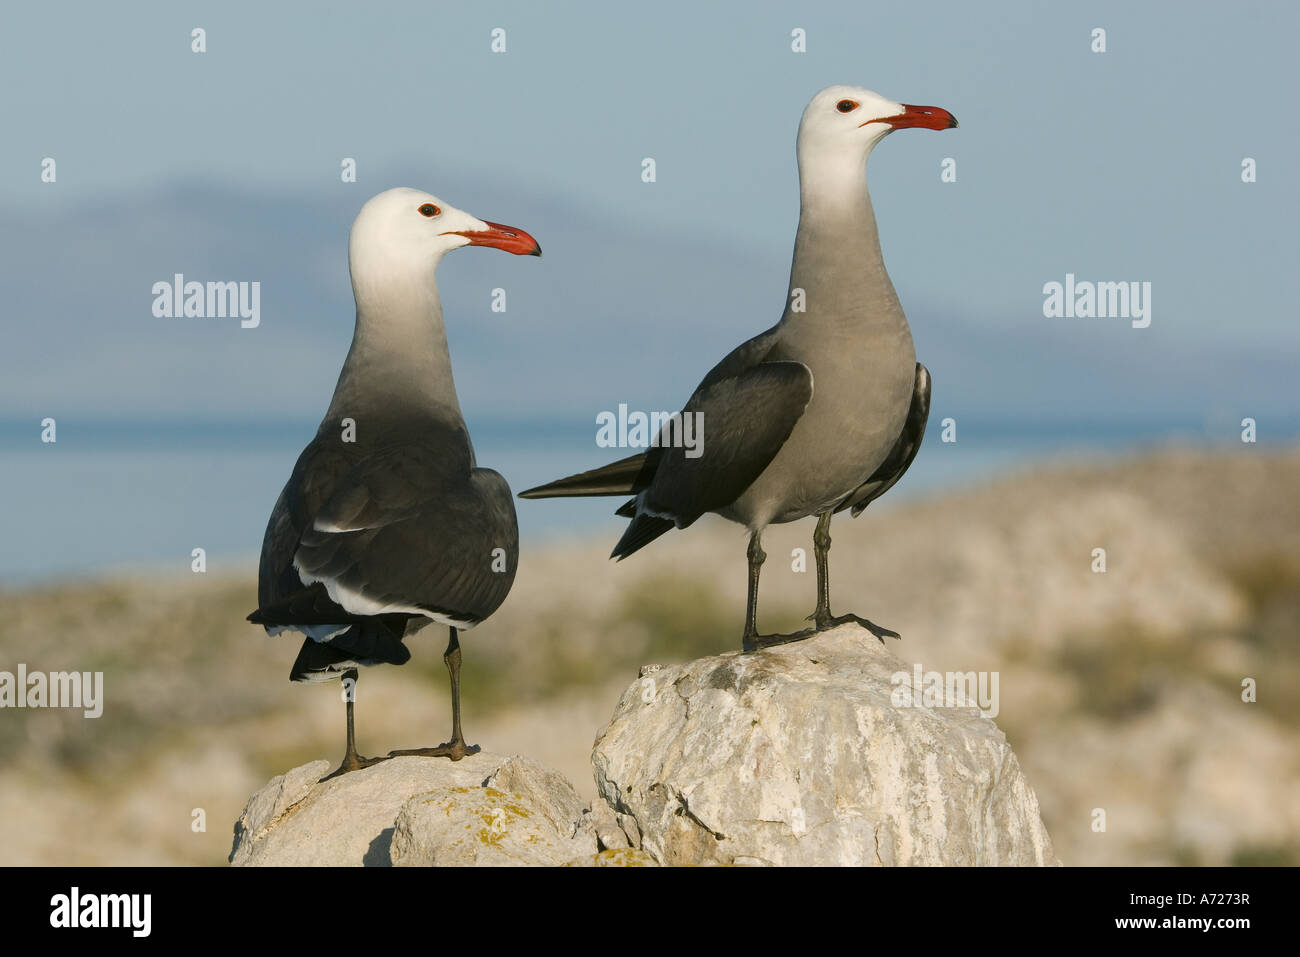 Heermann's Gull (Larus heermanni) Rasa Island, Sea of Cortez, Baja California, Mexico - Stock Image